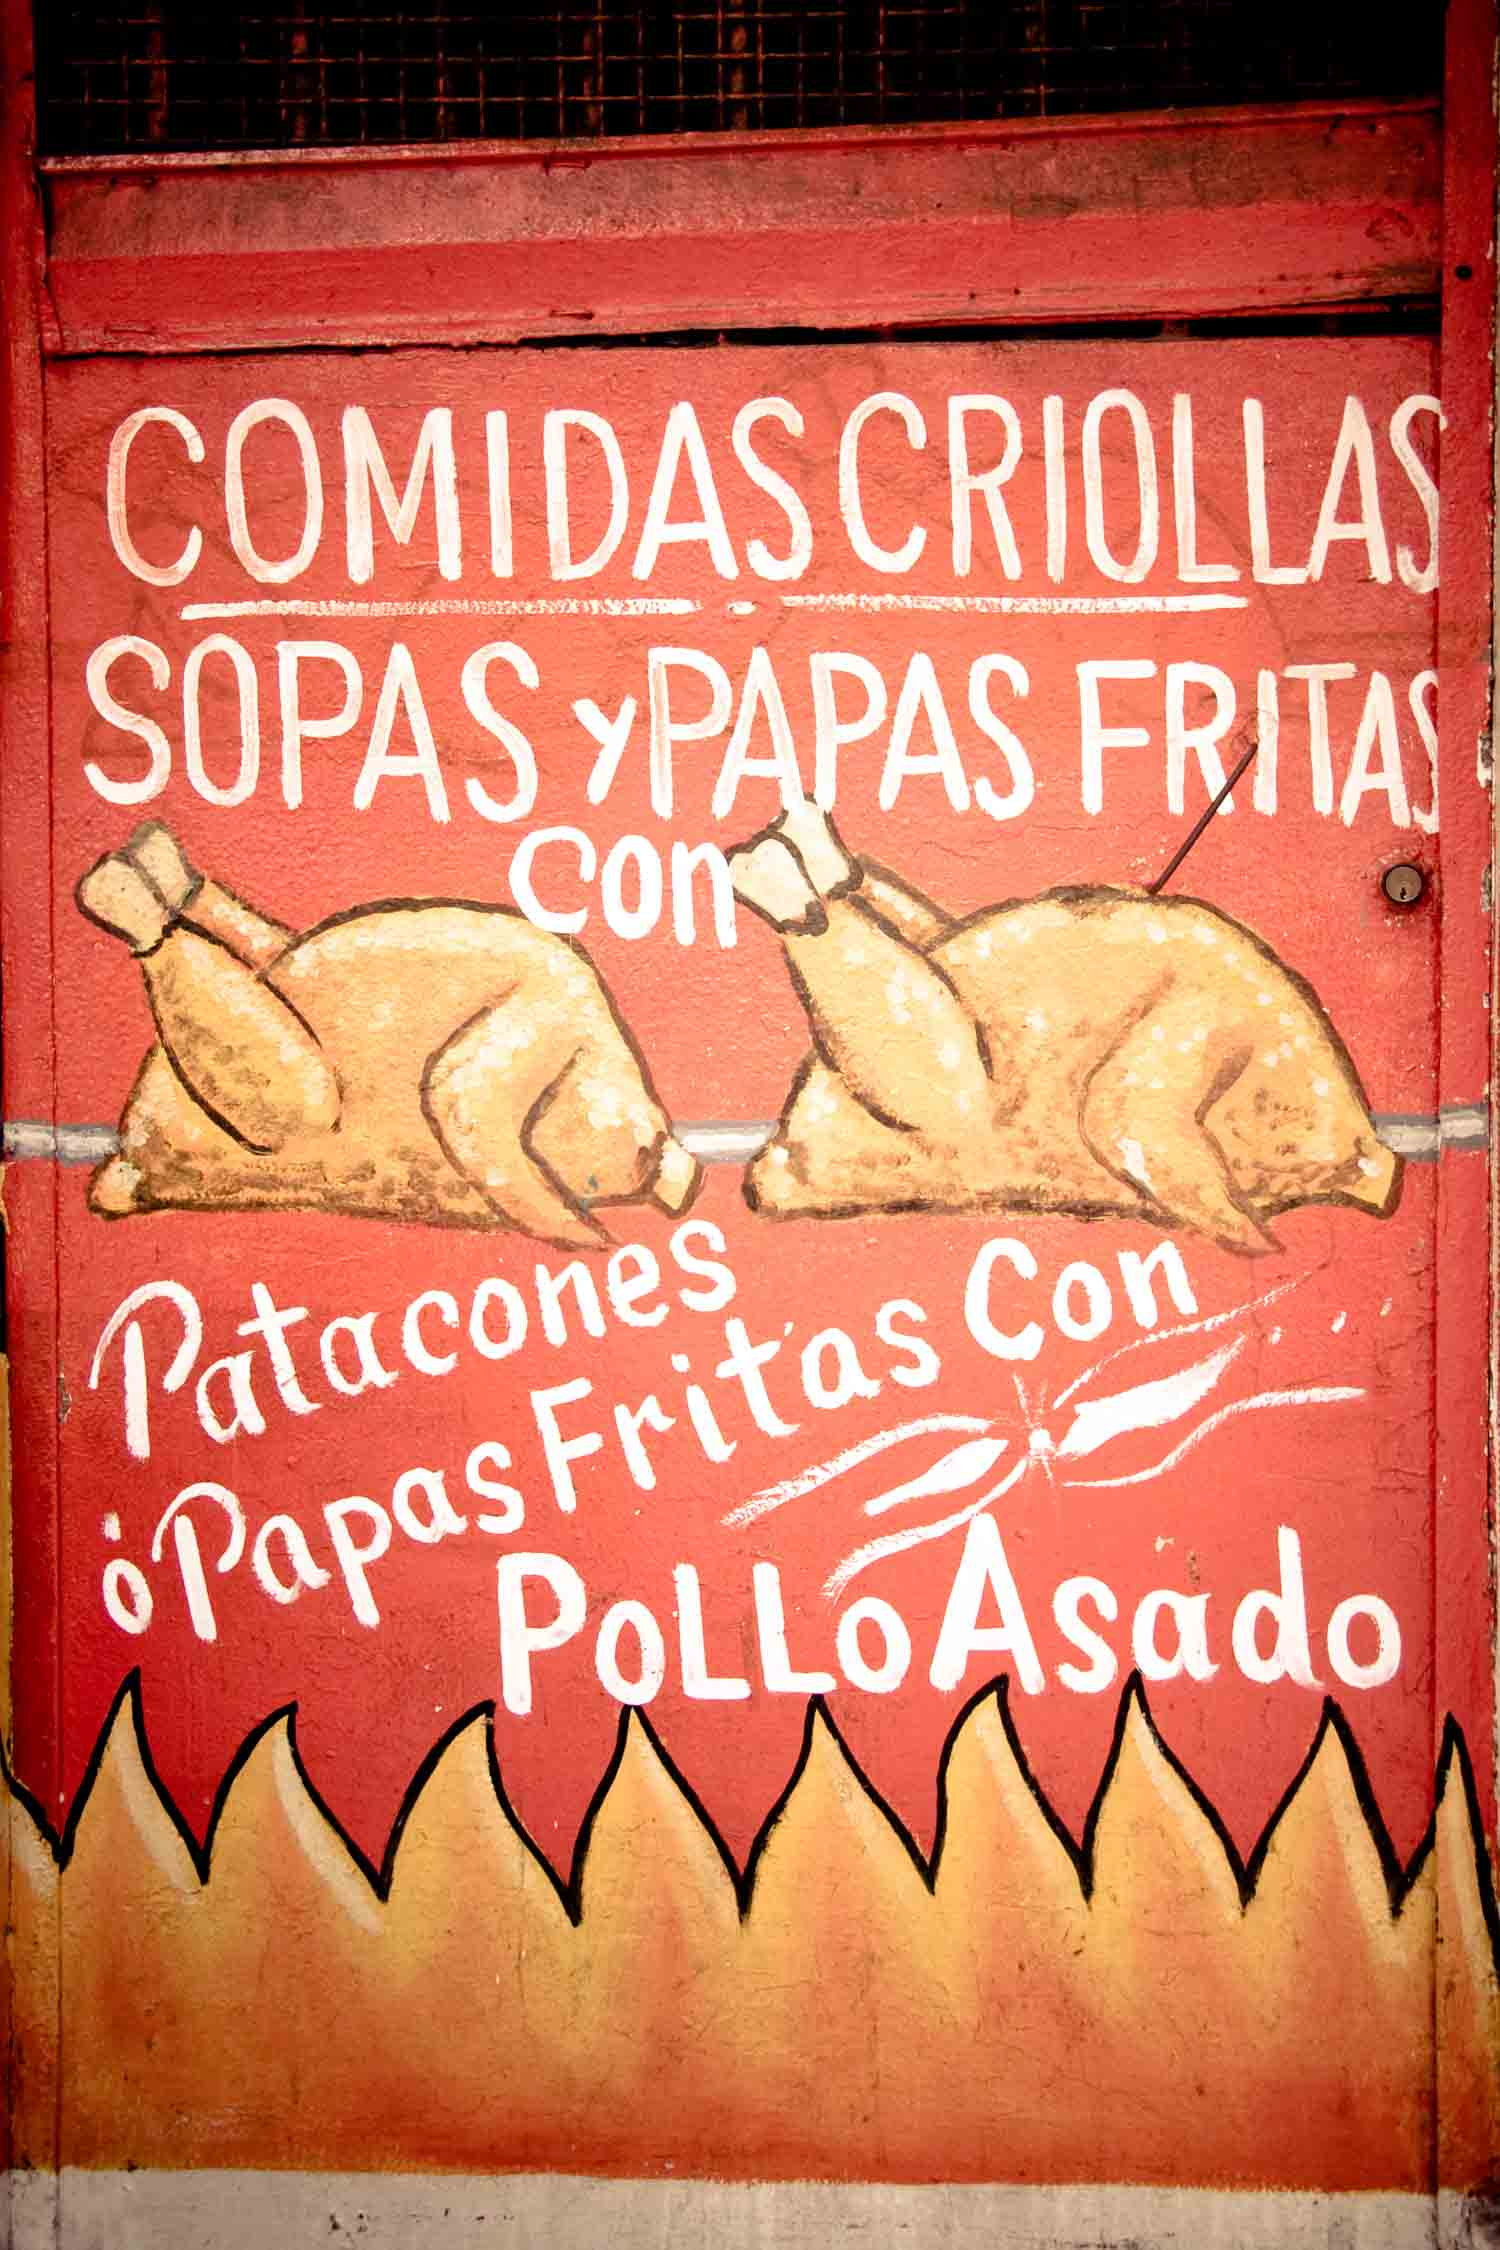 Panamanian food includes lots of street options and fast food like pollo asado.